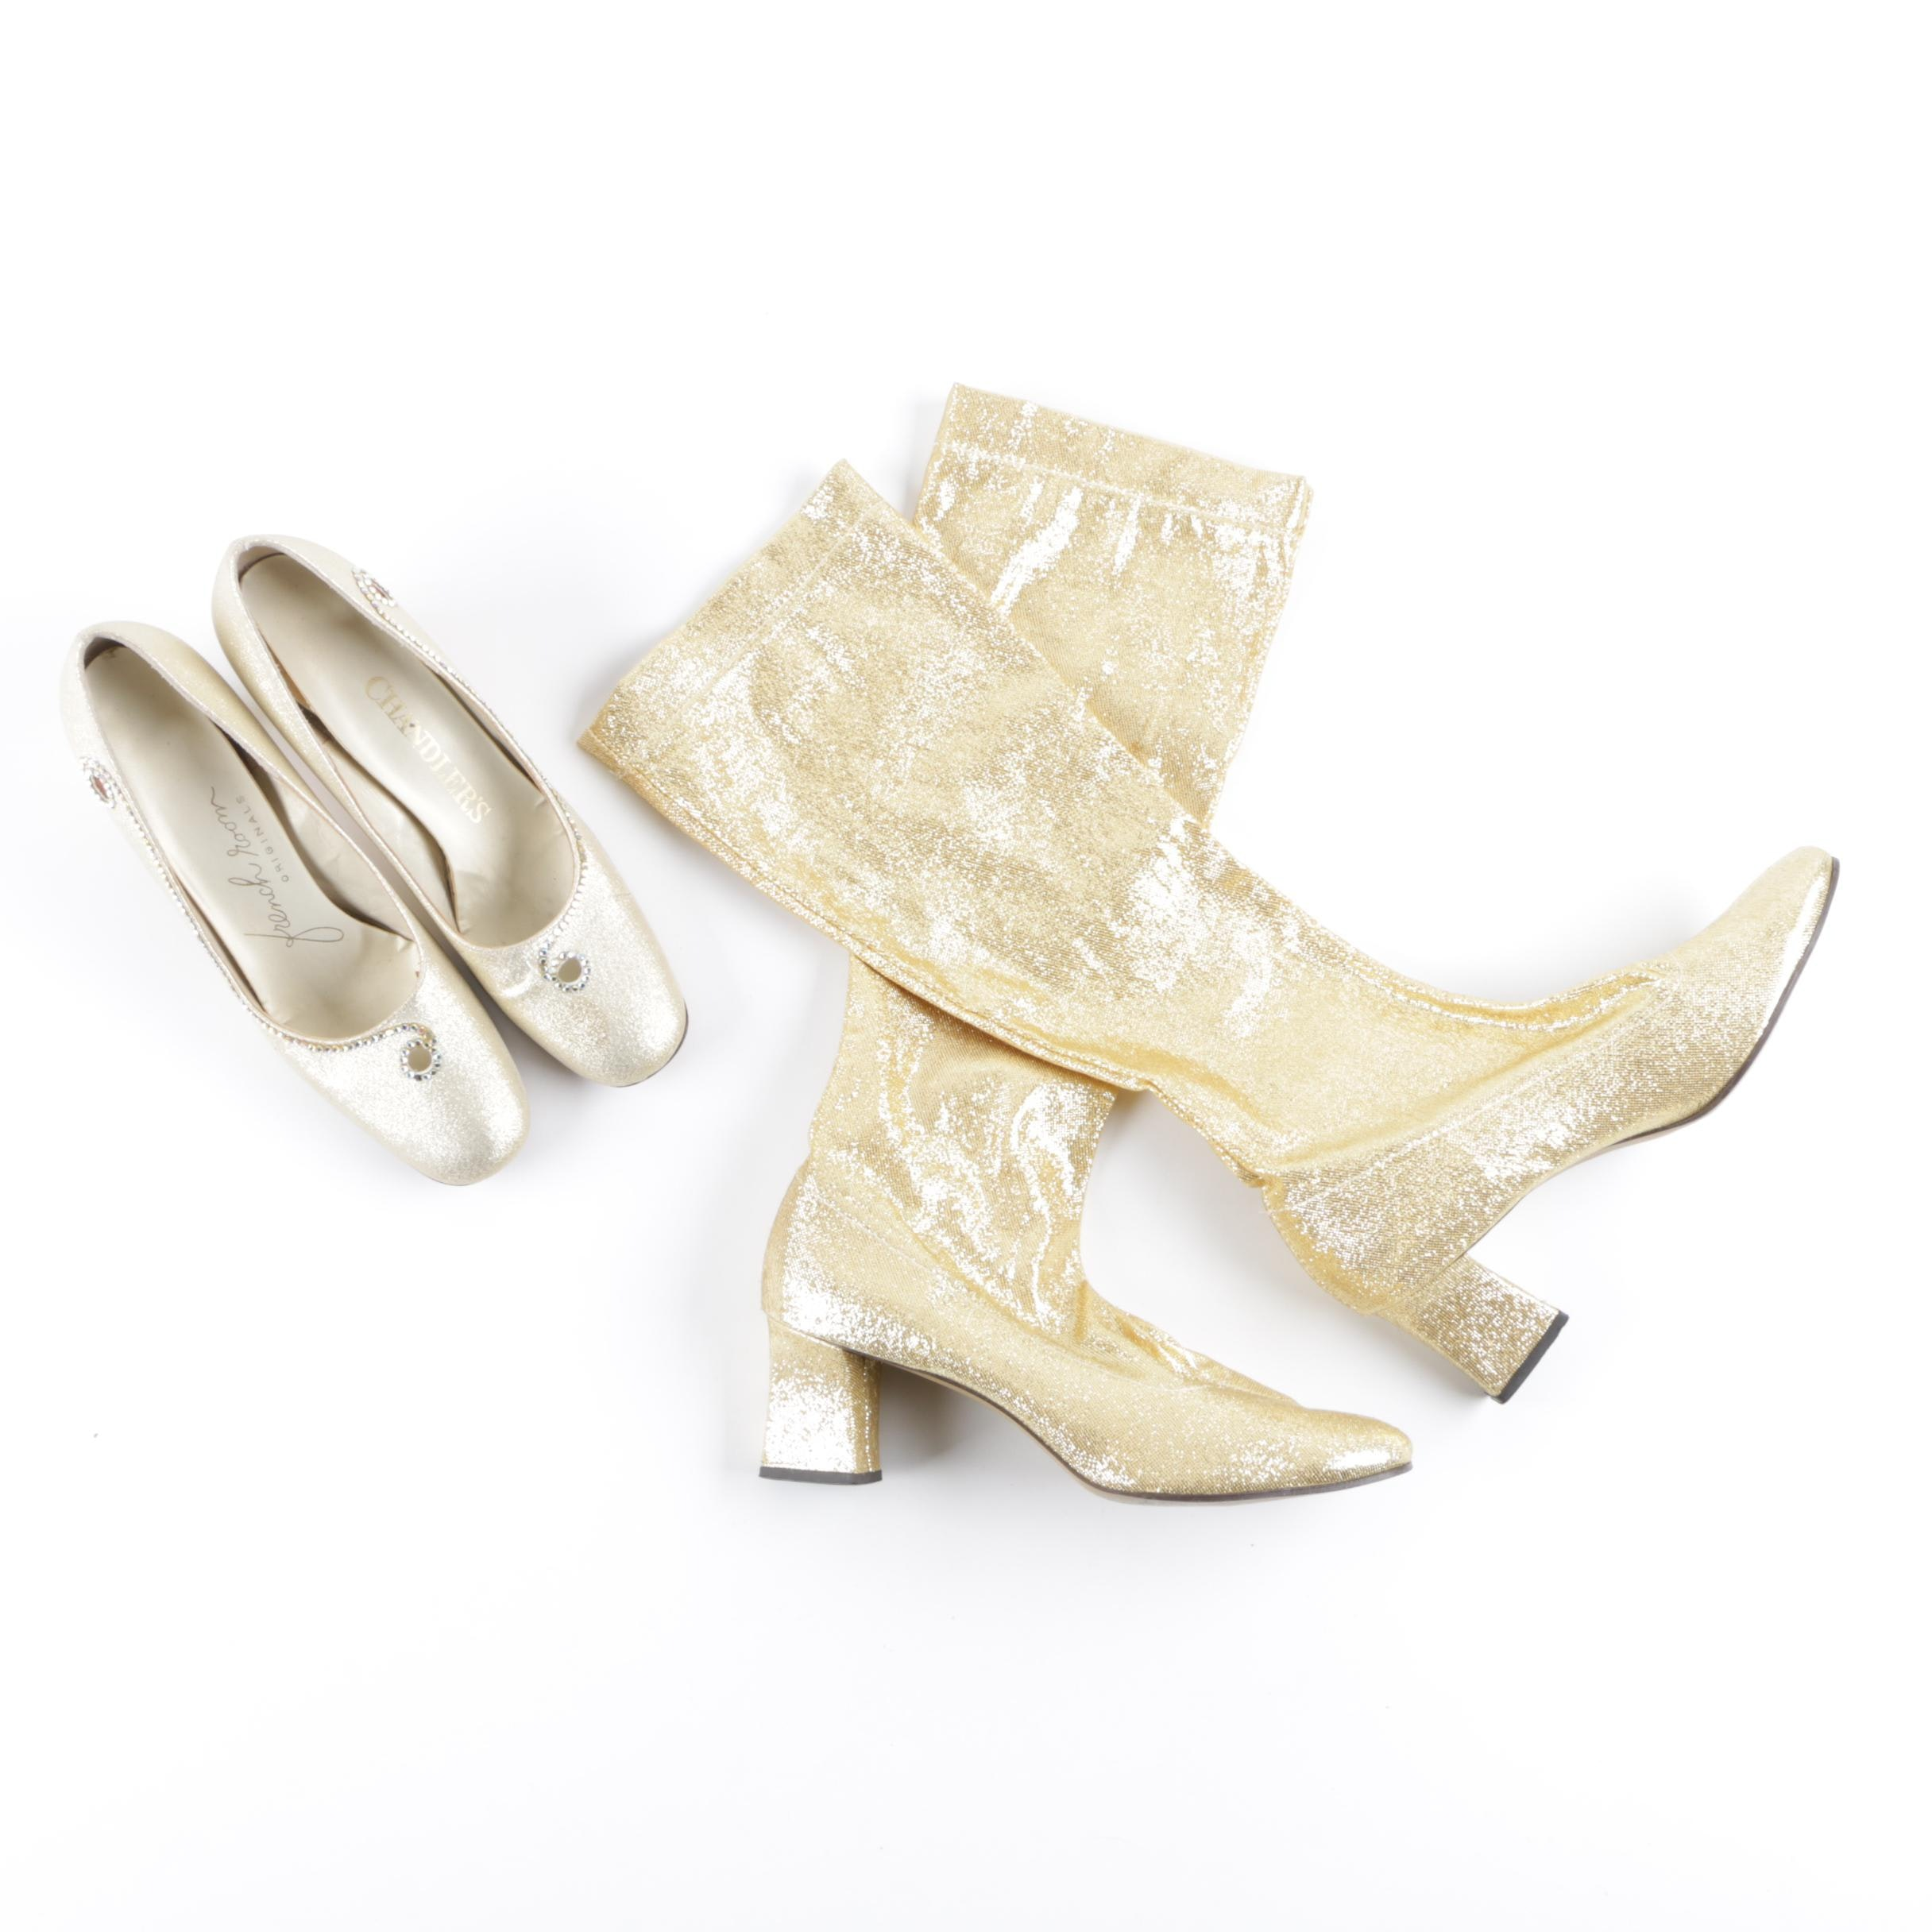 Vintage Metallic Gold Shoes Including Go-Go Boots